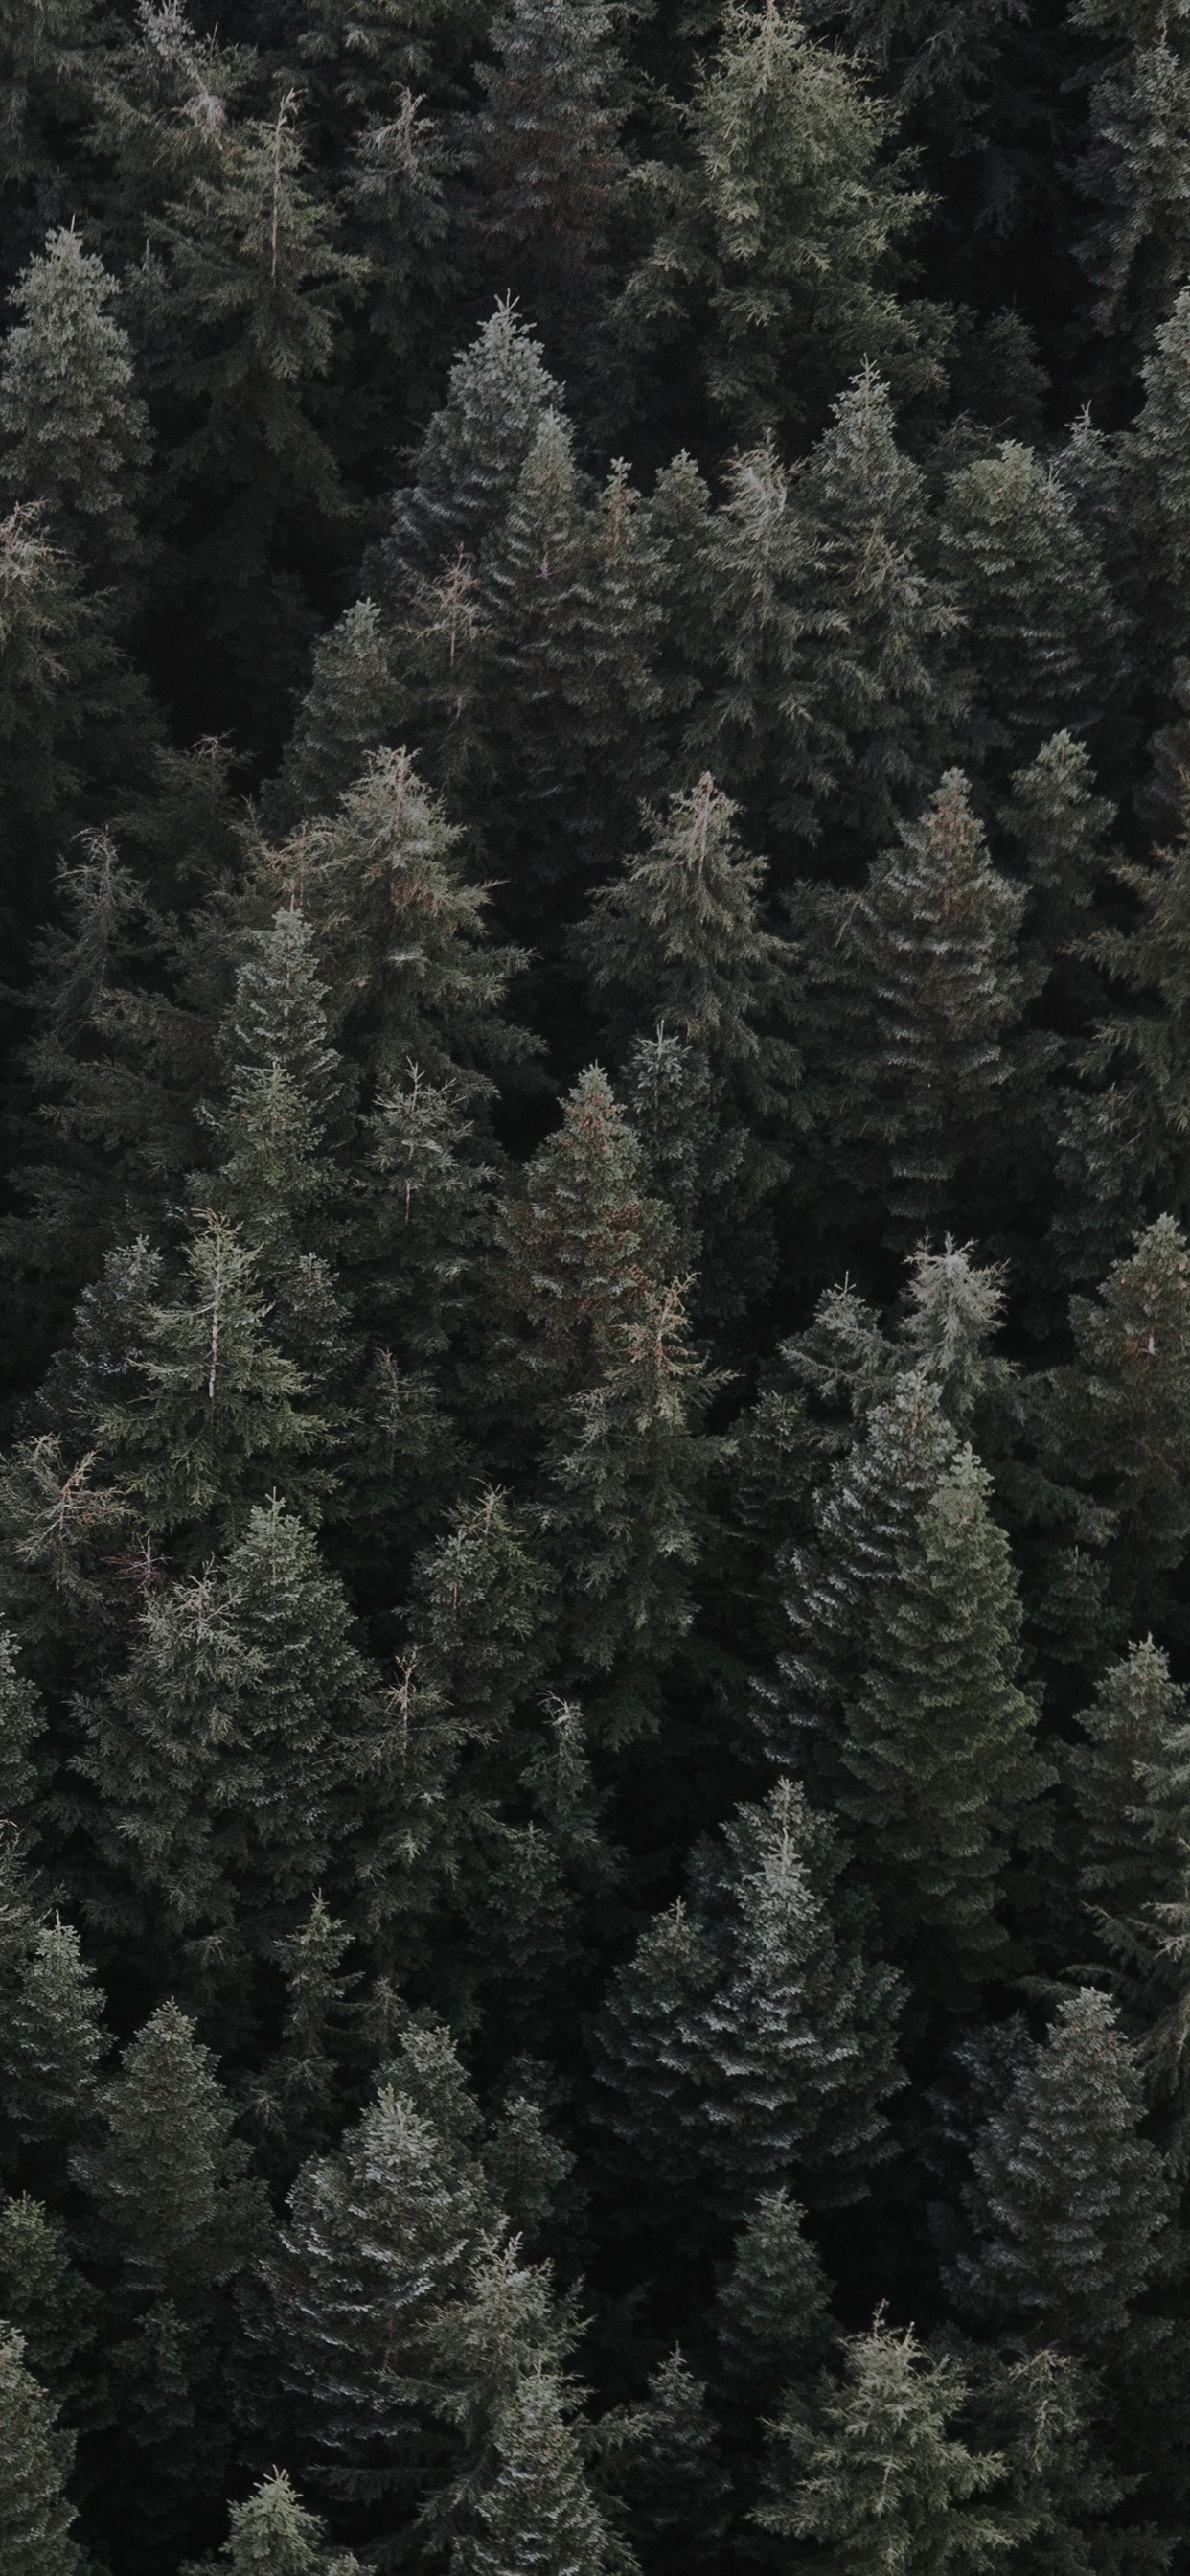 Forest Top View Darkness 1242x2688 Iphone 11 Pro Xs Max Wallpaper Background Picture Image